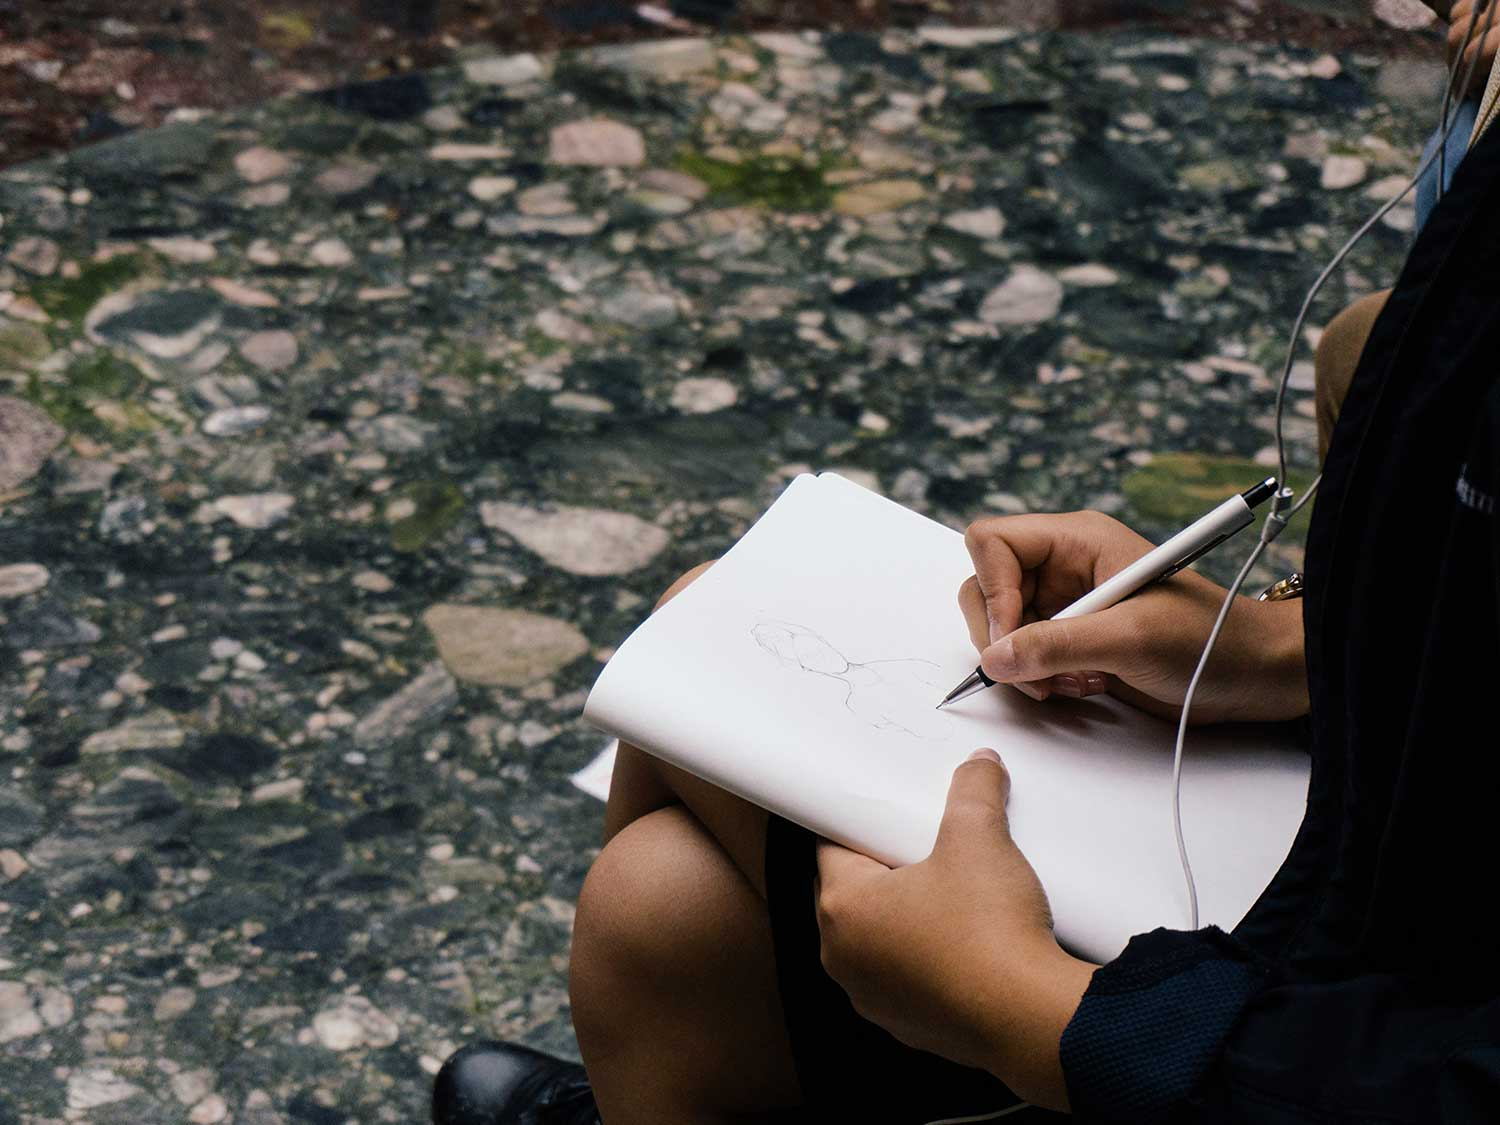 Woman drawing on sketch pad.